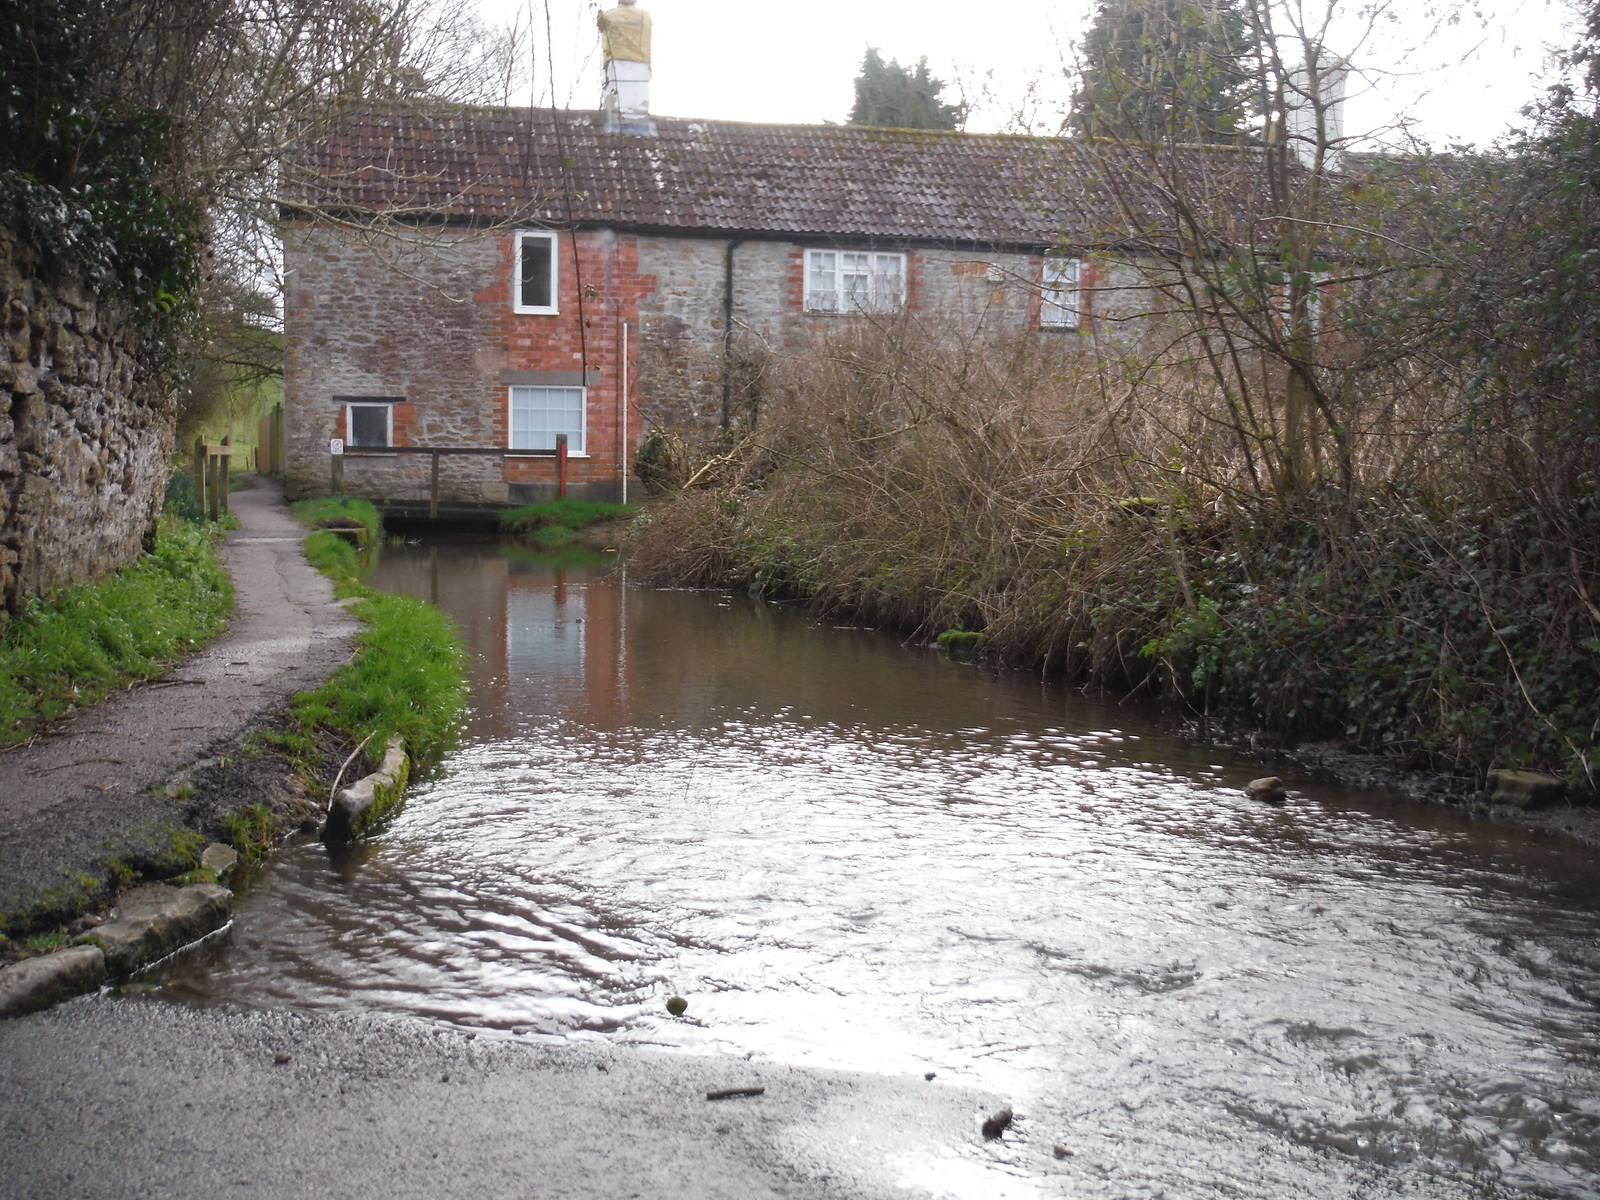 Combe Brook flooding Tolbury Lane and disappearing under Old Mill SWC Walk 284 Bruton Circular (via Hauser & Wirth Somerset) or from Castle Cary